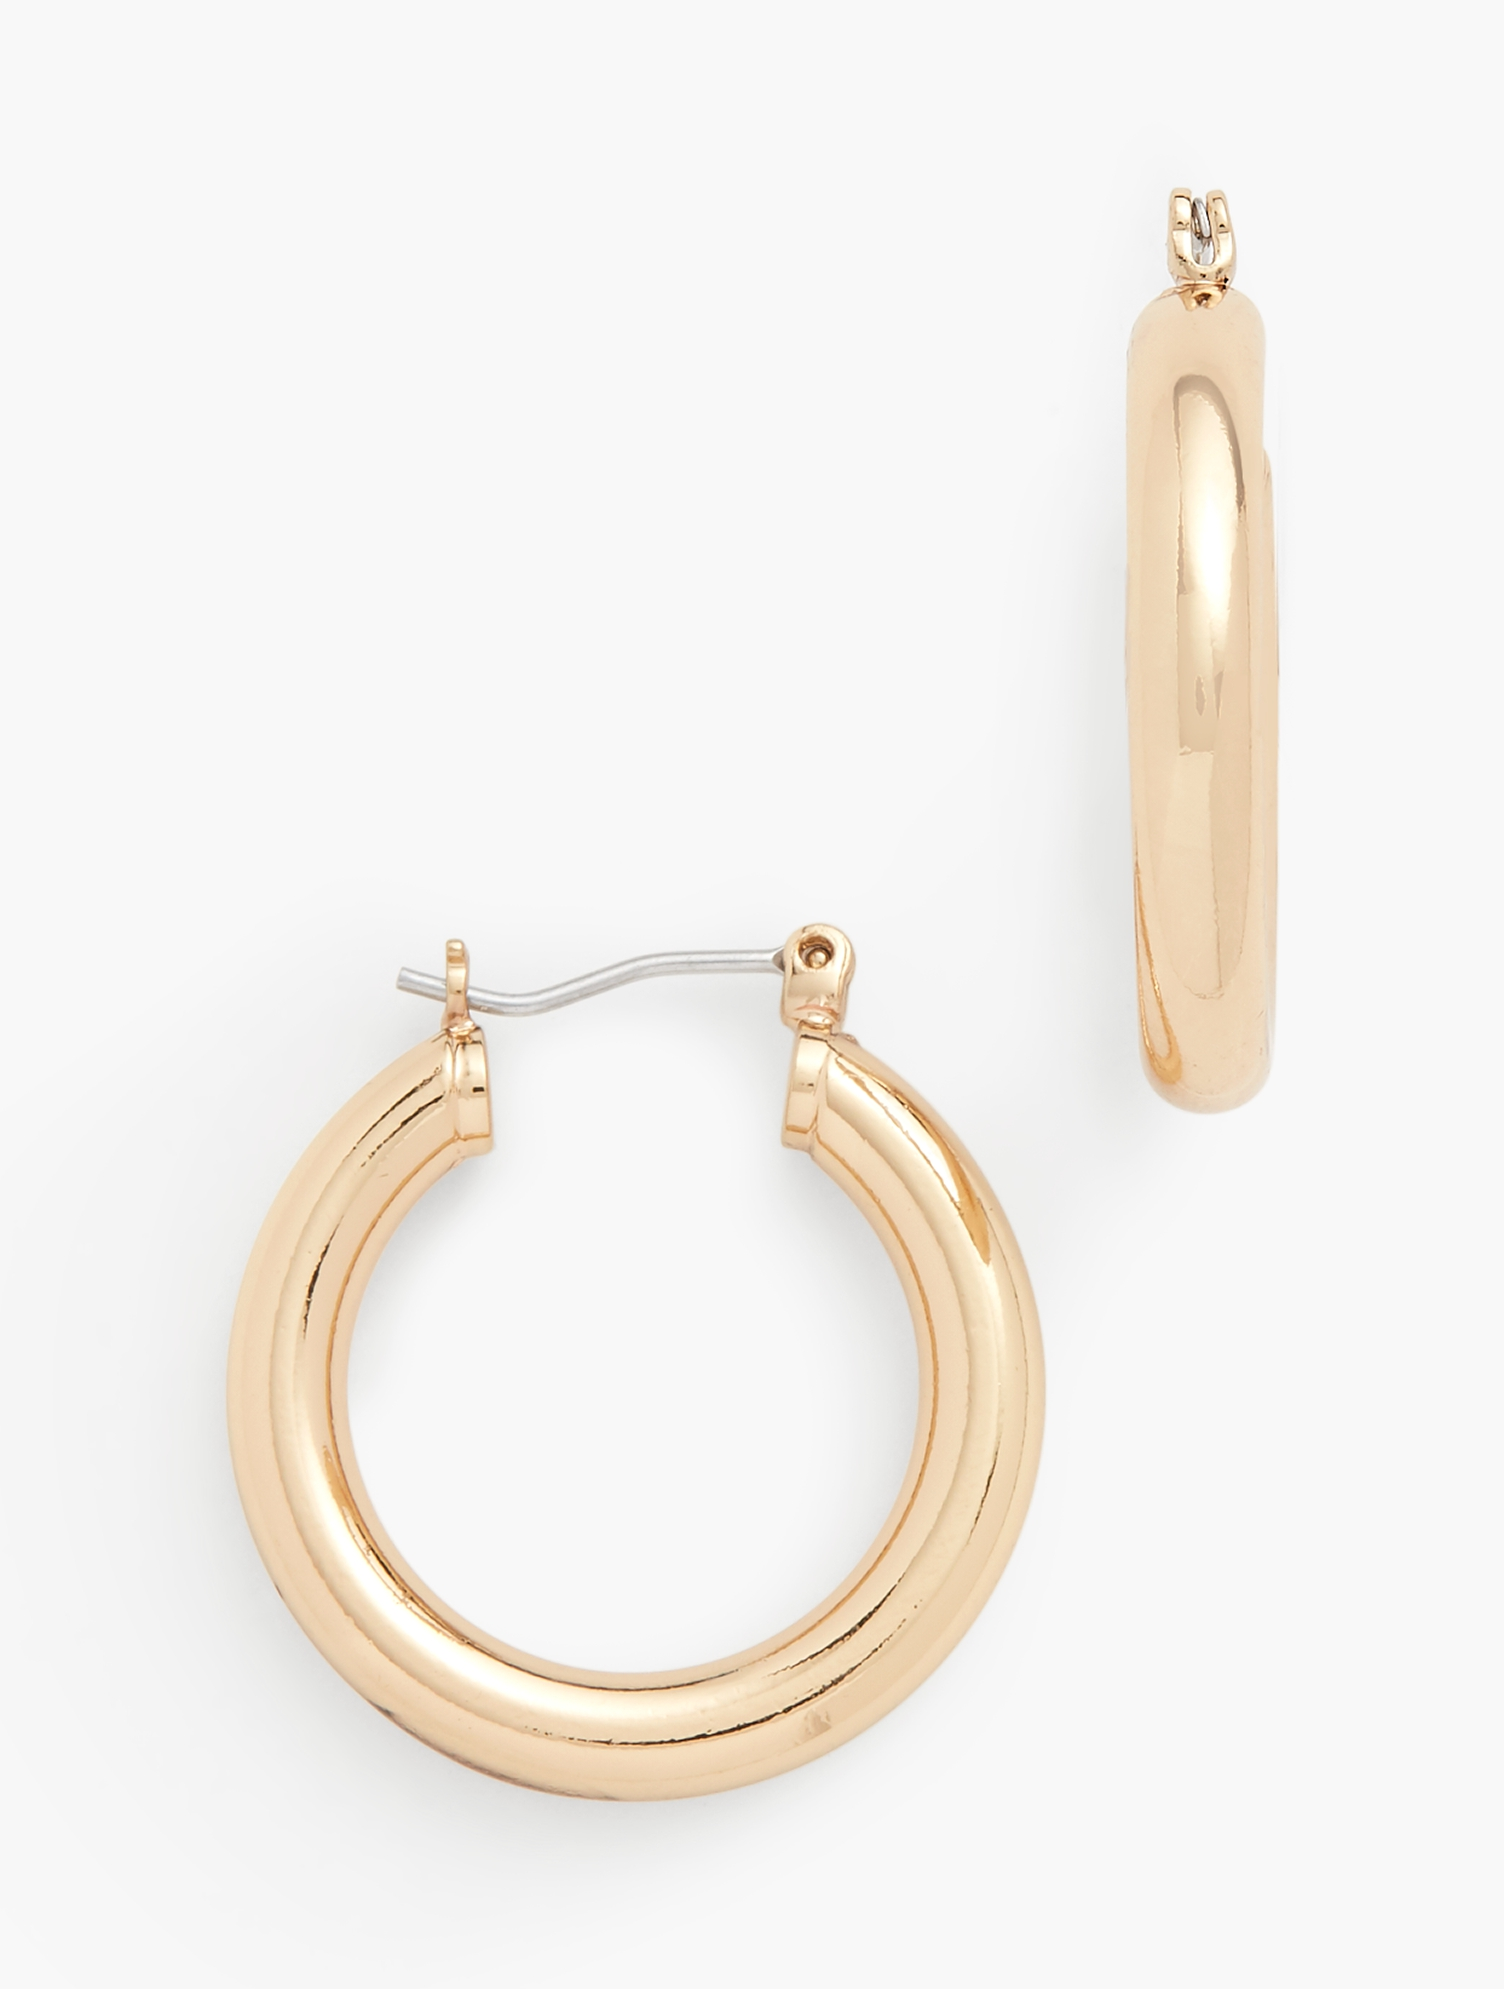 60s -70s Jewelry – Necklaces, Earrings, Rings, Bracelets Classic Hoop Earrings - GOLD - OS - Talbots $17.70 AT vintagedancer.com